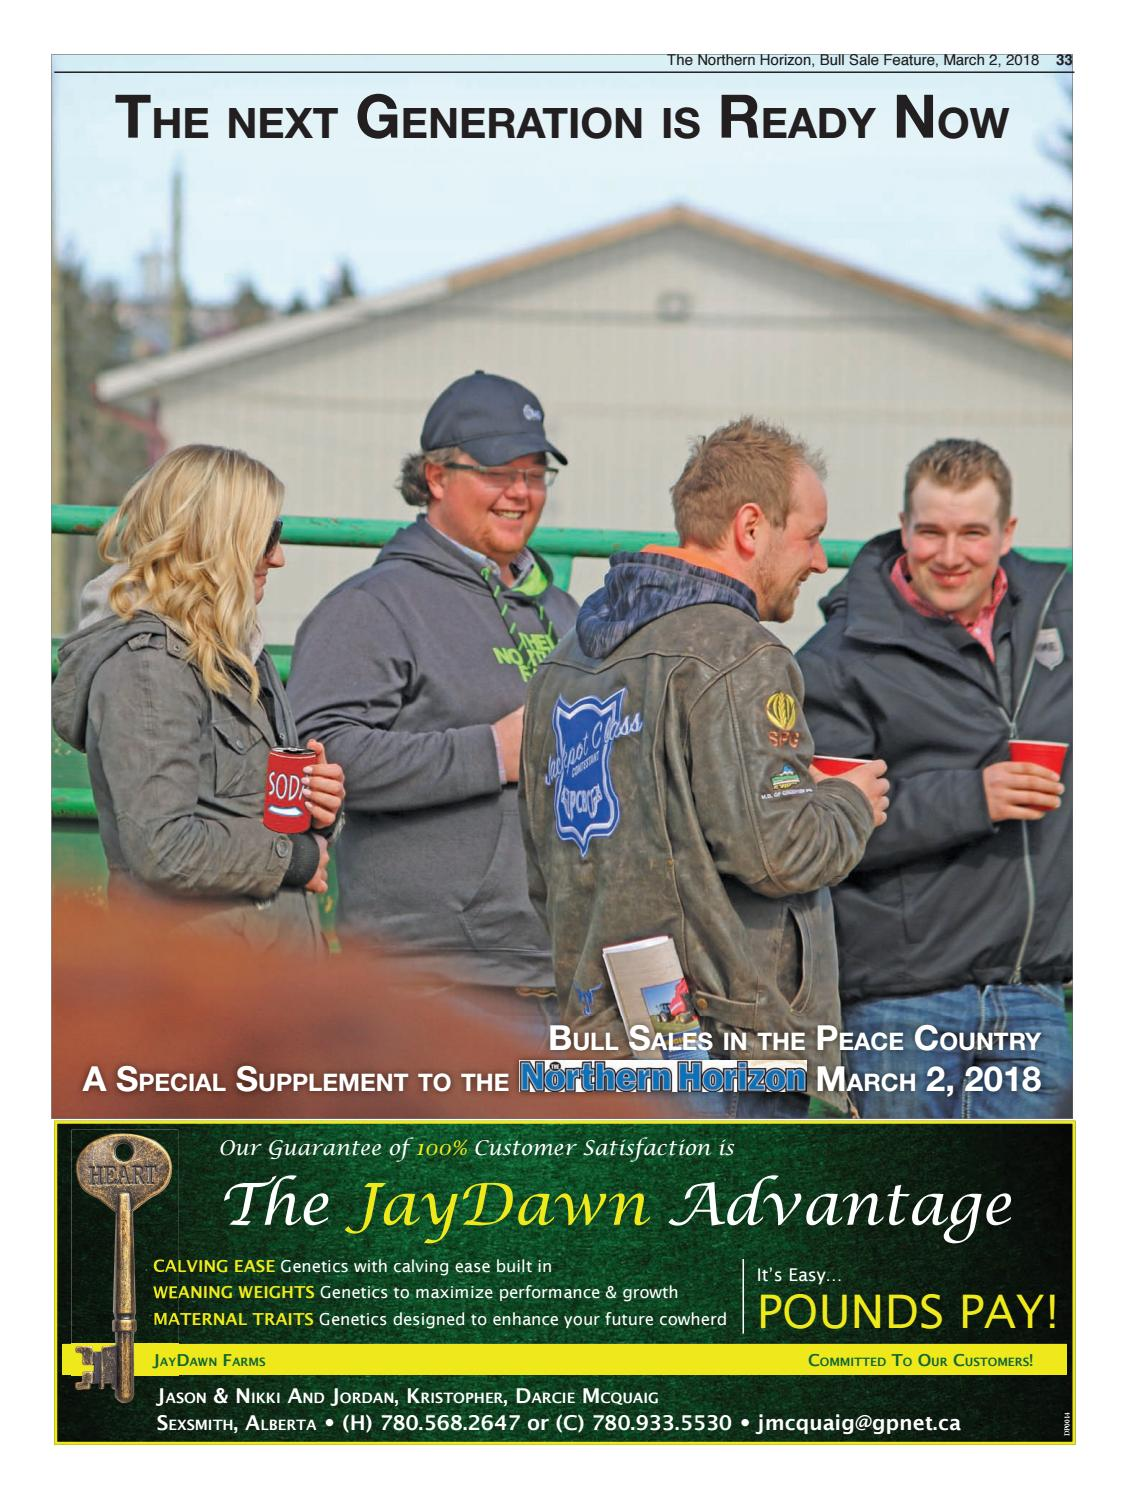 Northern Horizon Bull Sale Supplement#2 2018-0302 by The